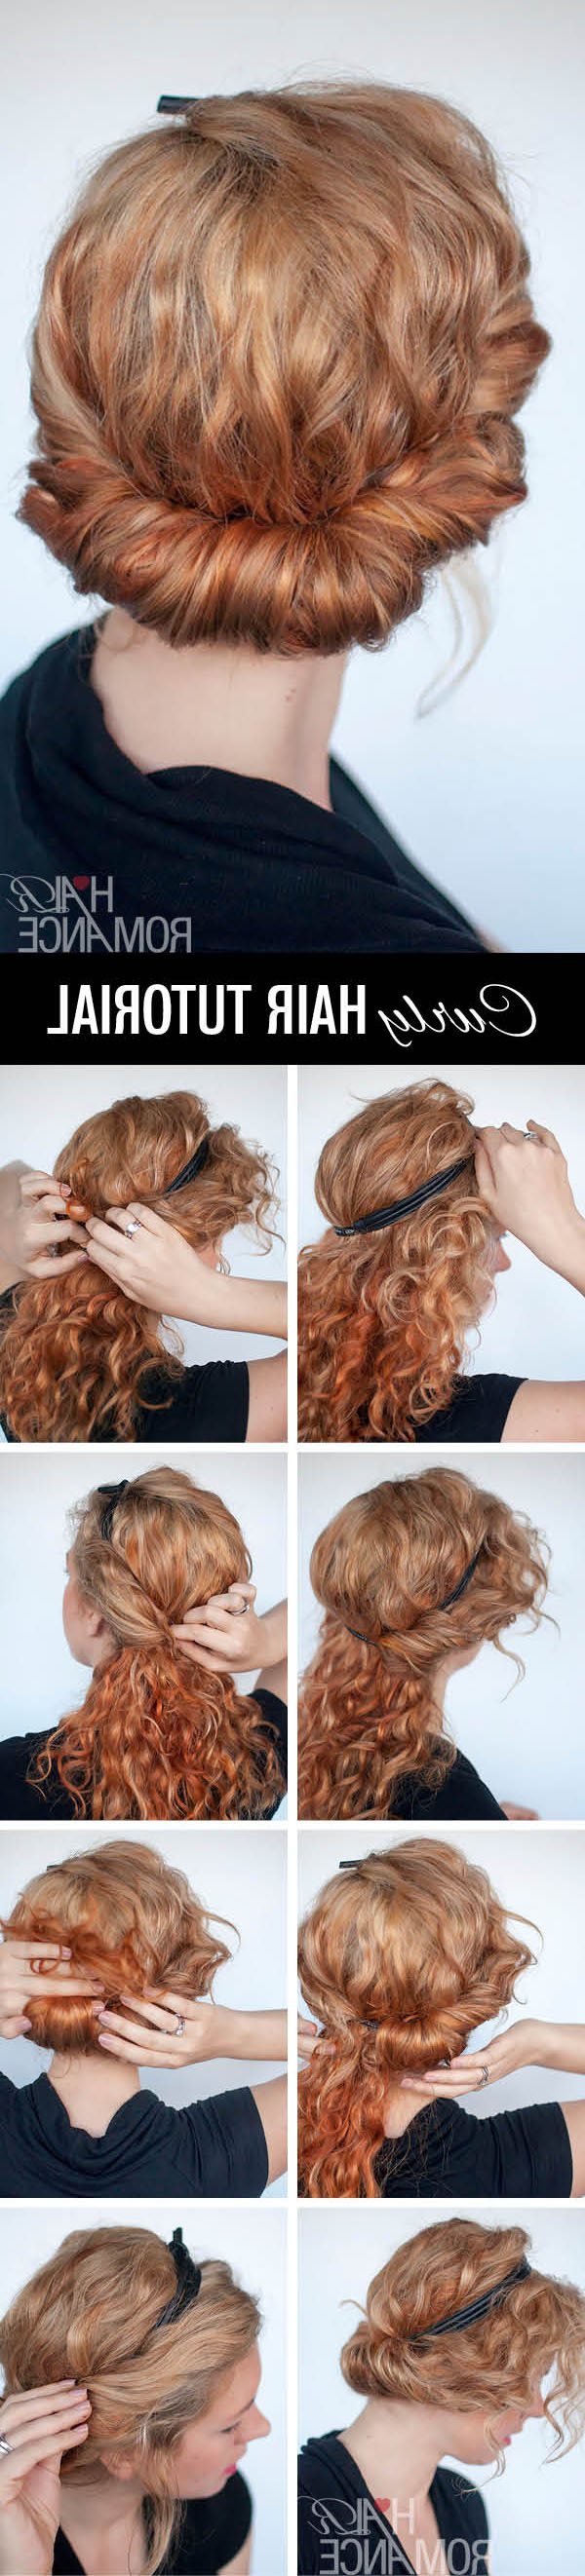 Elegant Hairstyles For Special Occasions Inside Most Popular Medium Hairstyles Formal Occasions (Gallery 15 of 20)